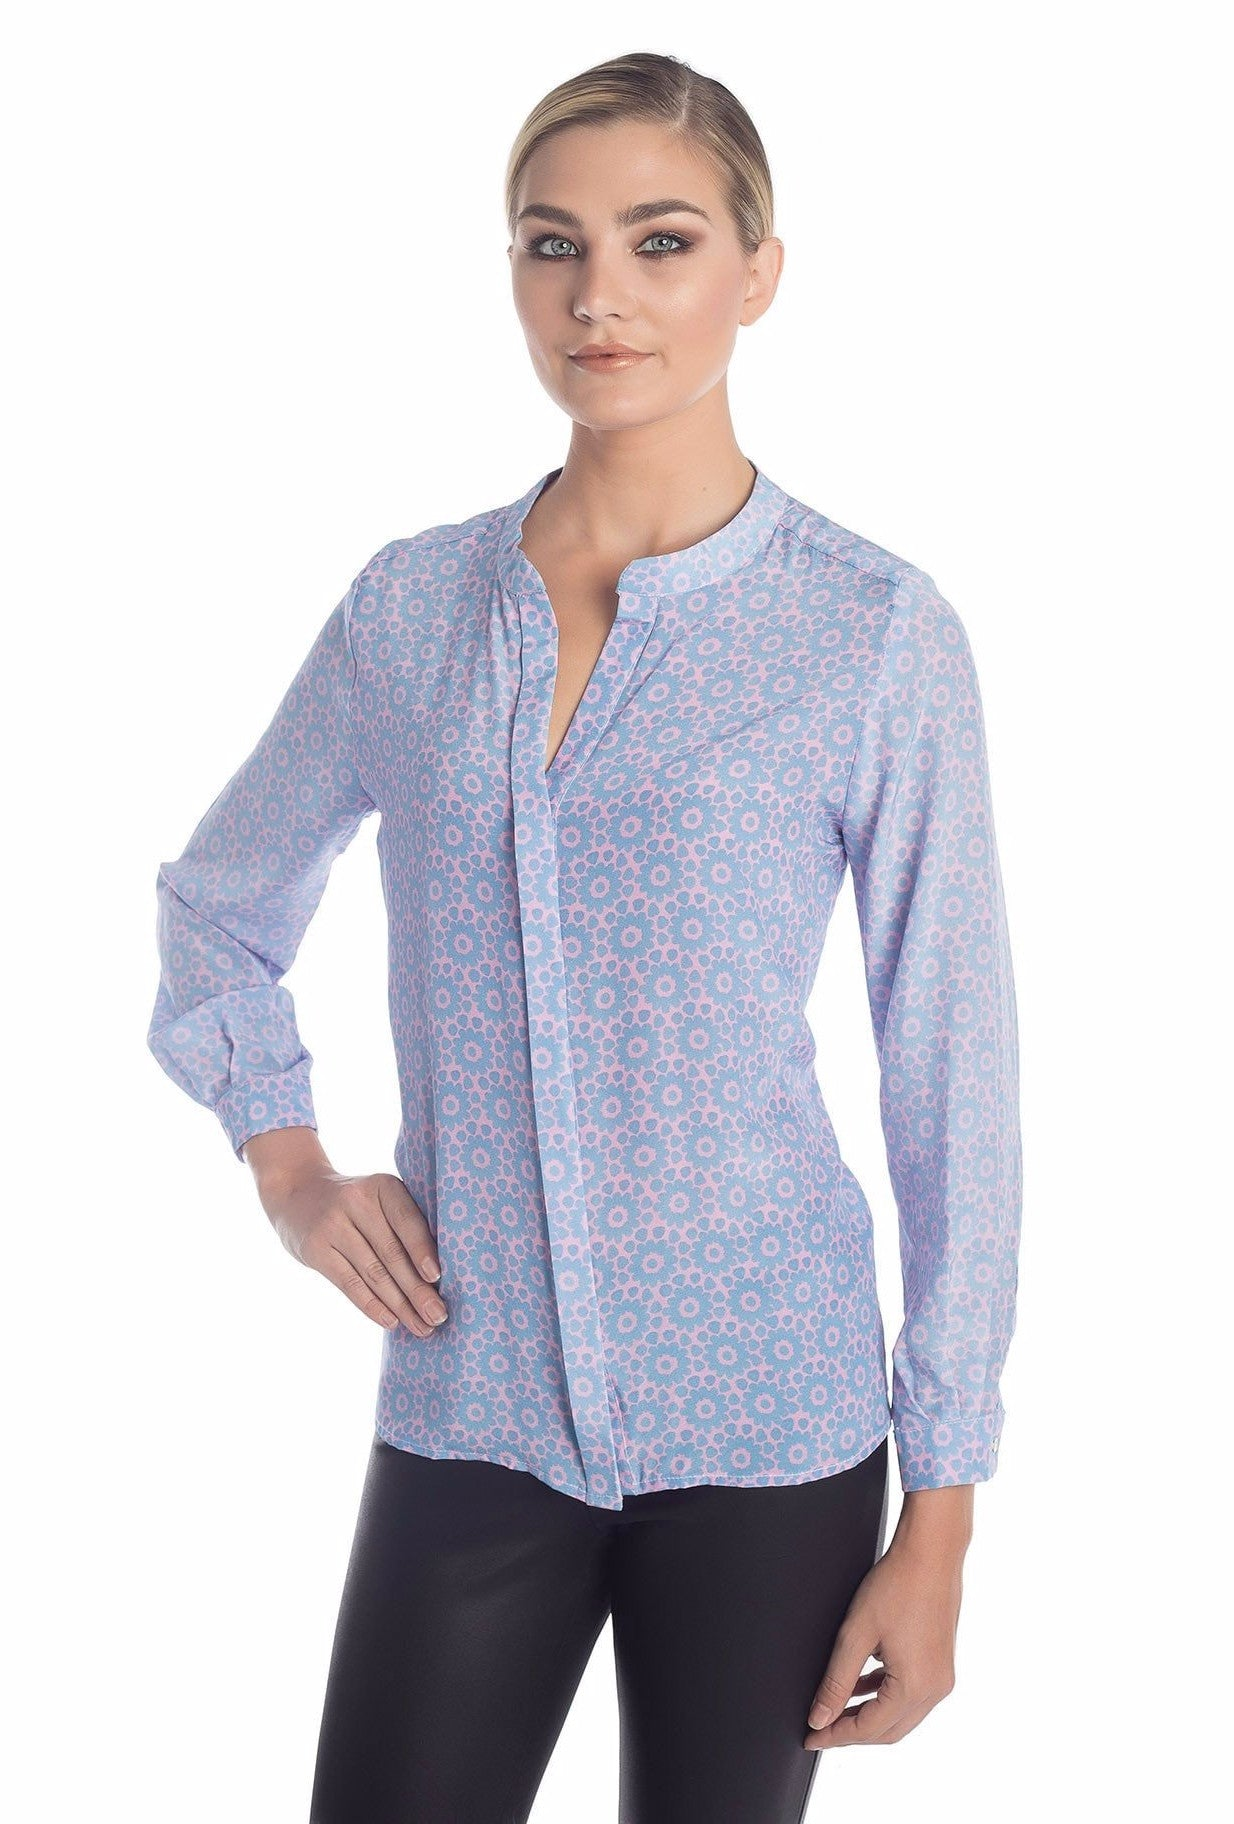 Limited Edition Dressy Top To Wear With Jeans Artteca